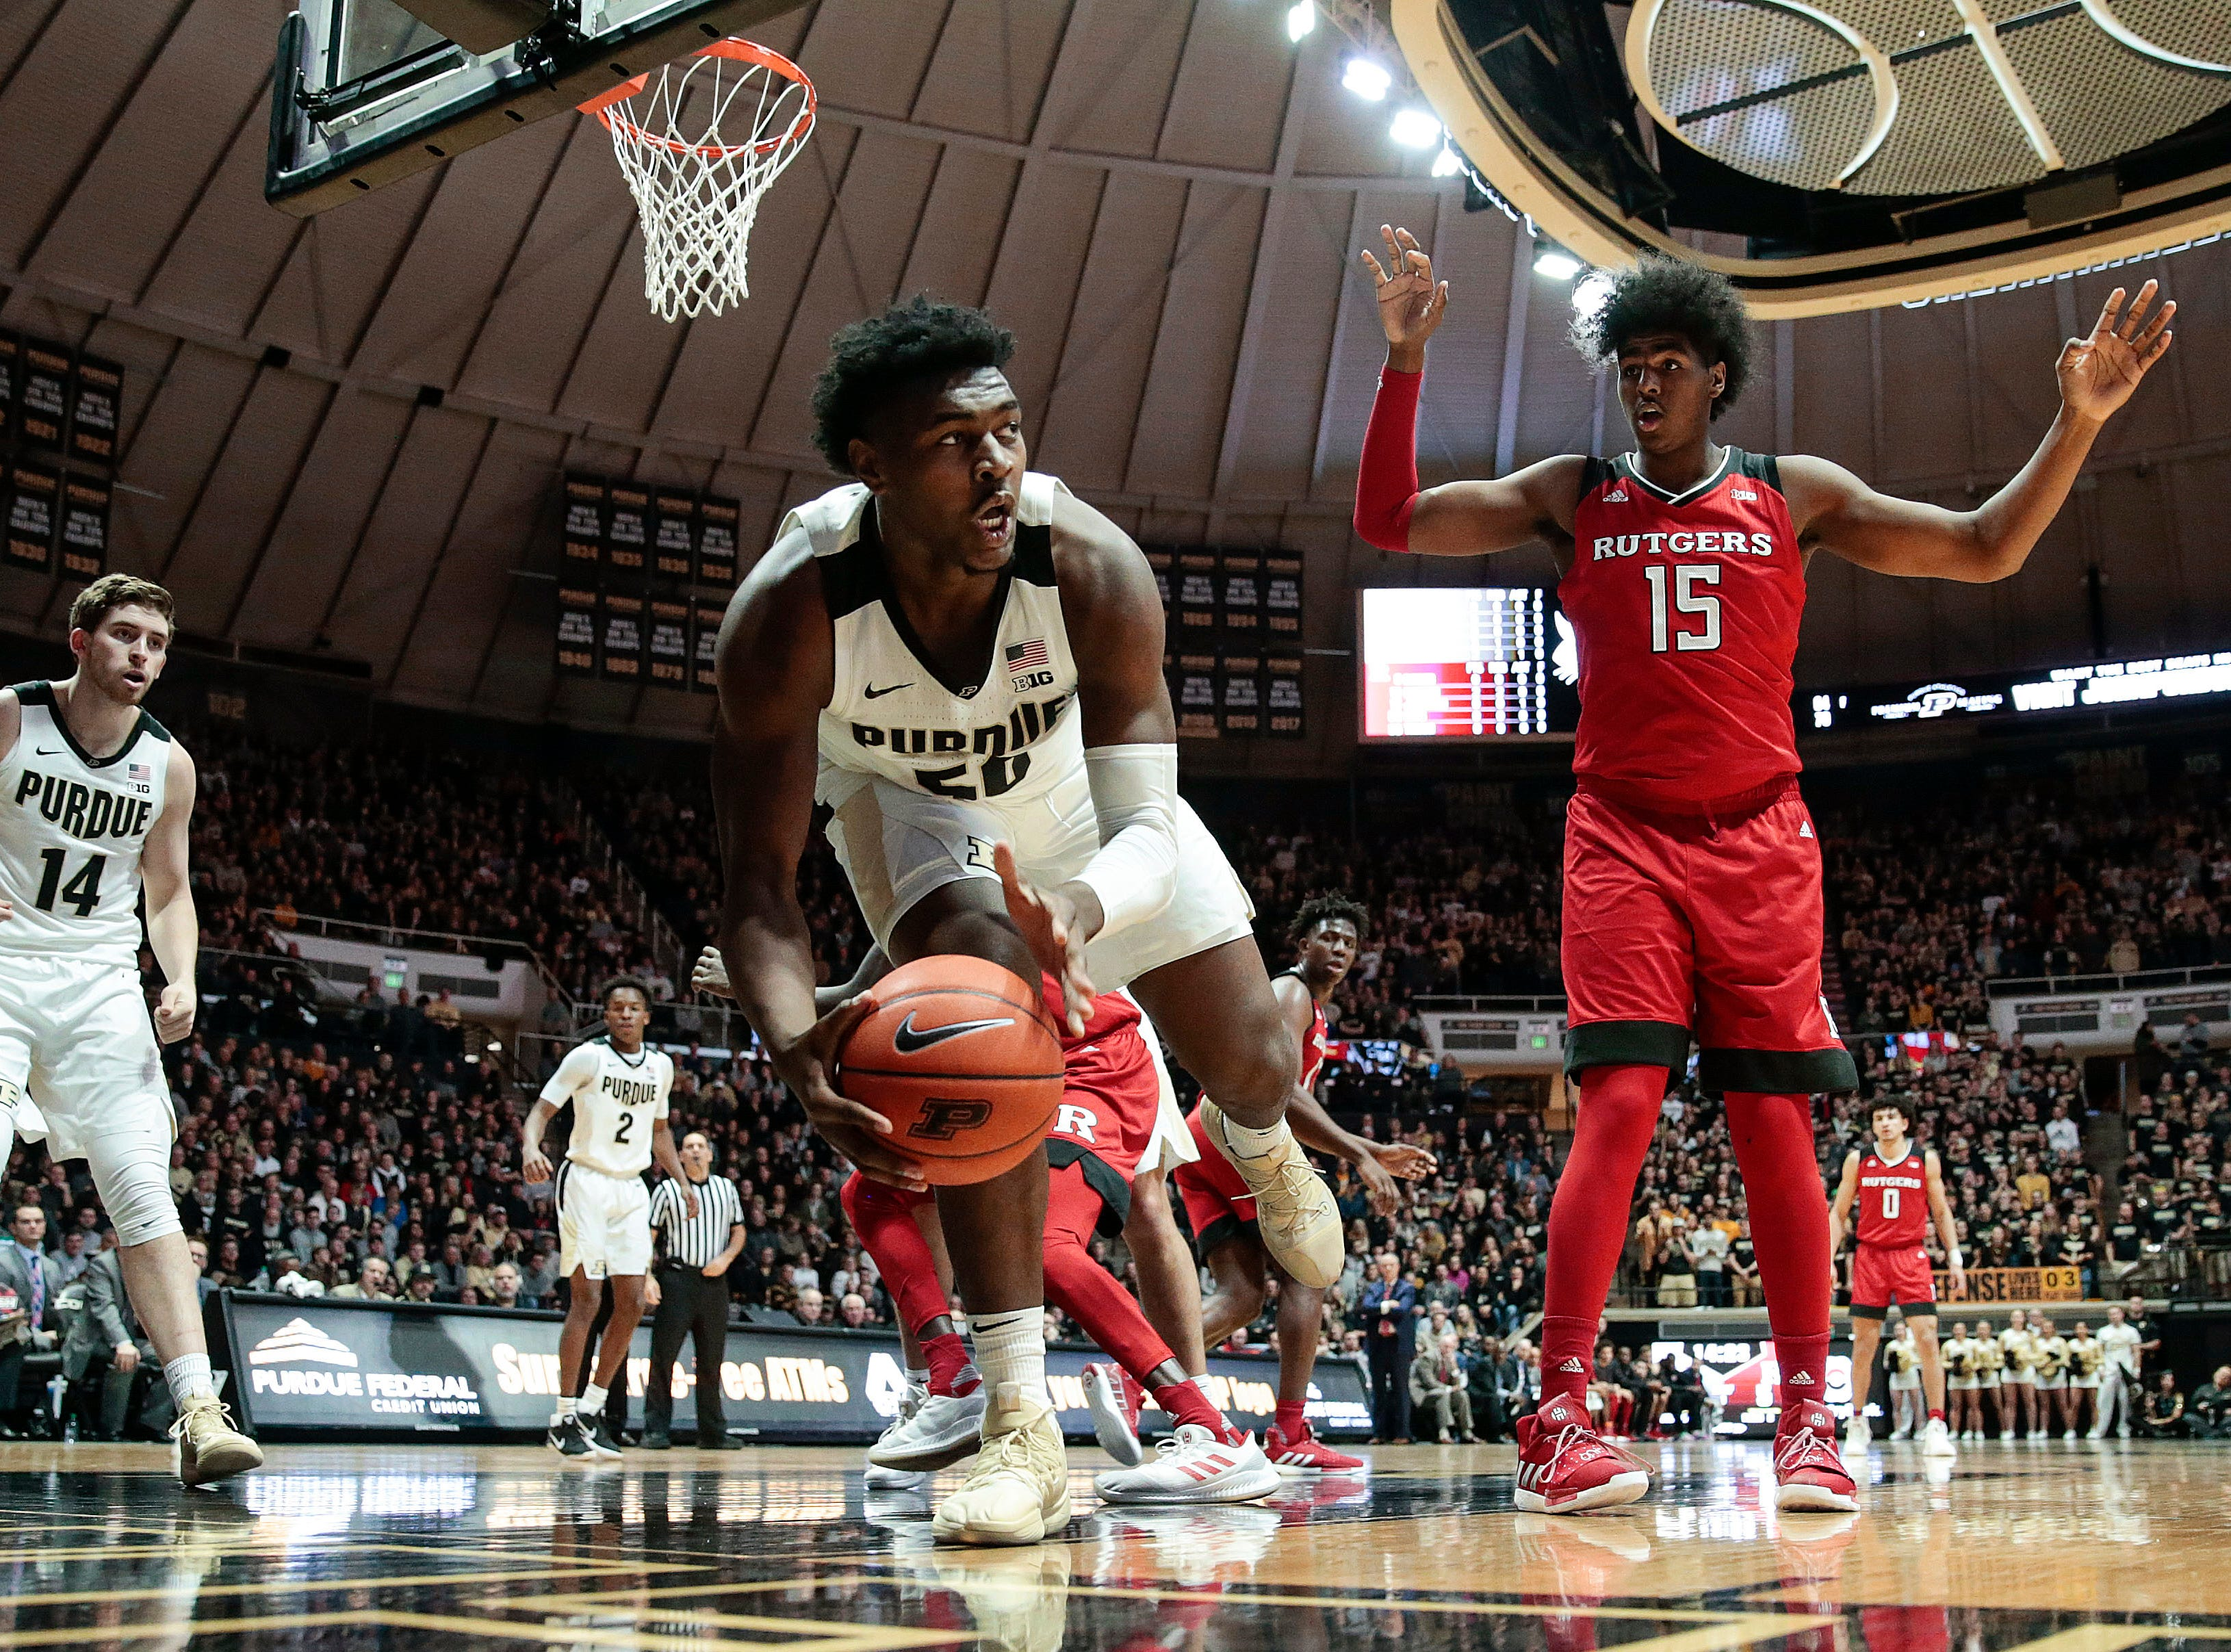 Purdue forward Trevion Williams (50) saves a rebound from going out of bounds in front of Rutgers center Myles Johnson (15)